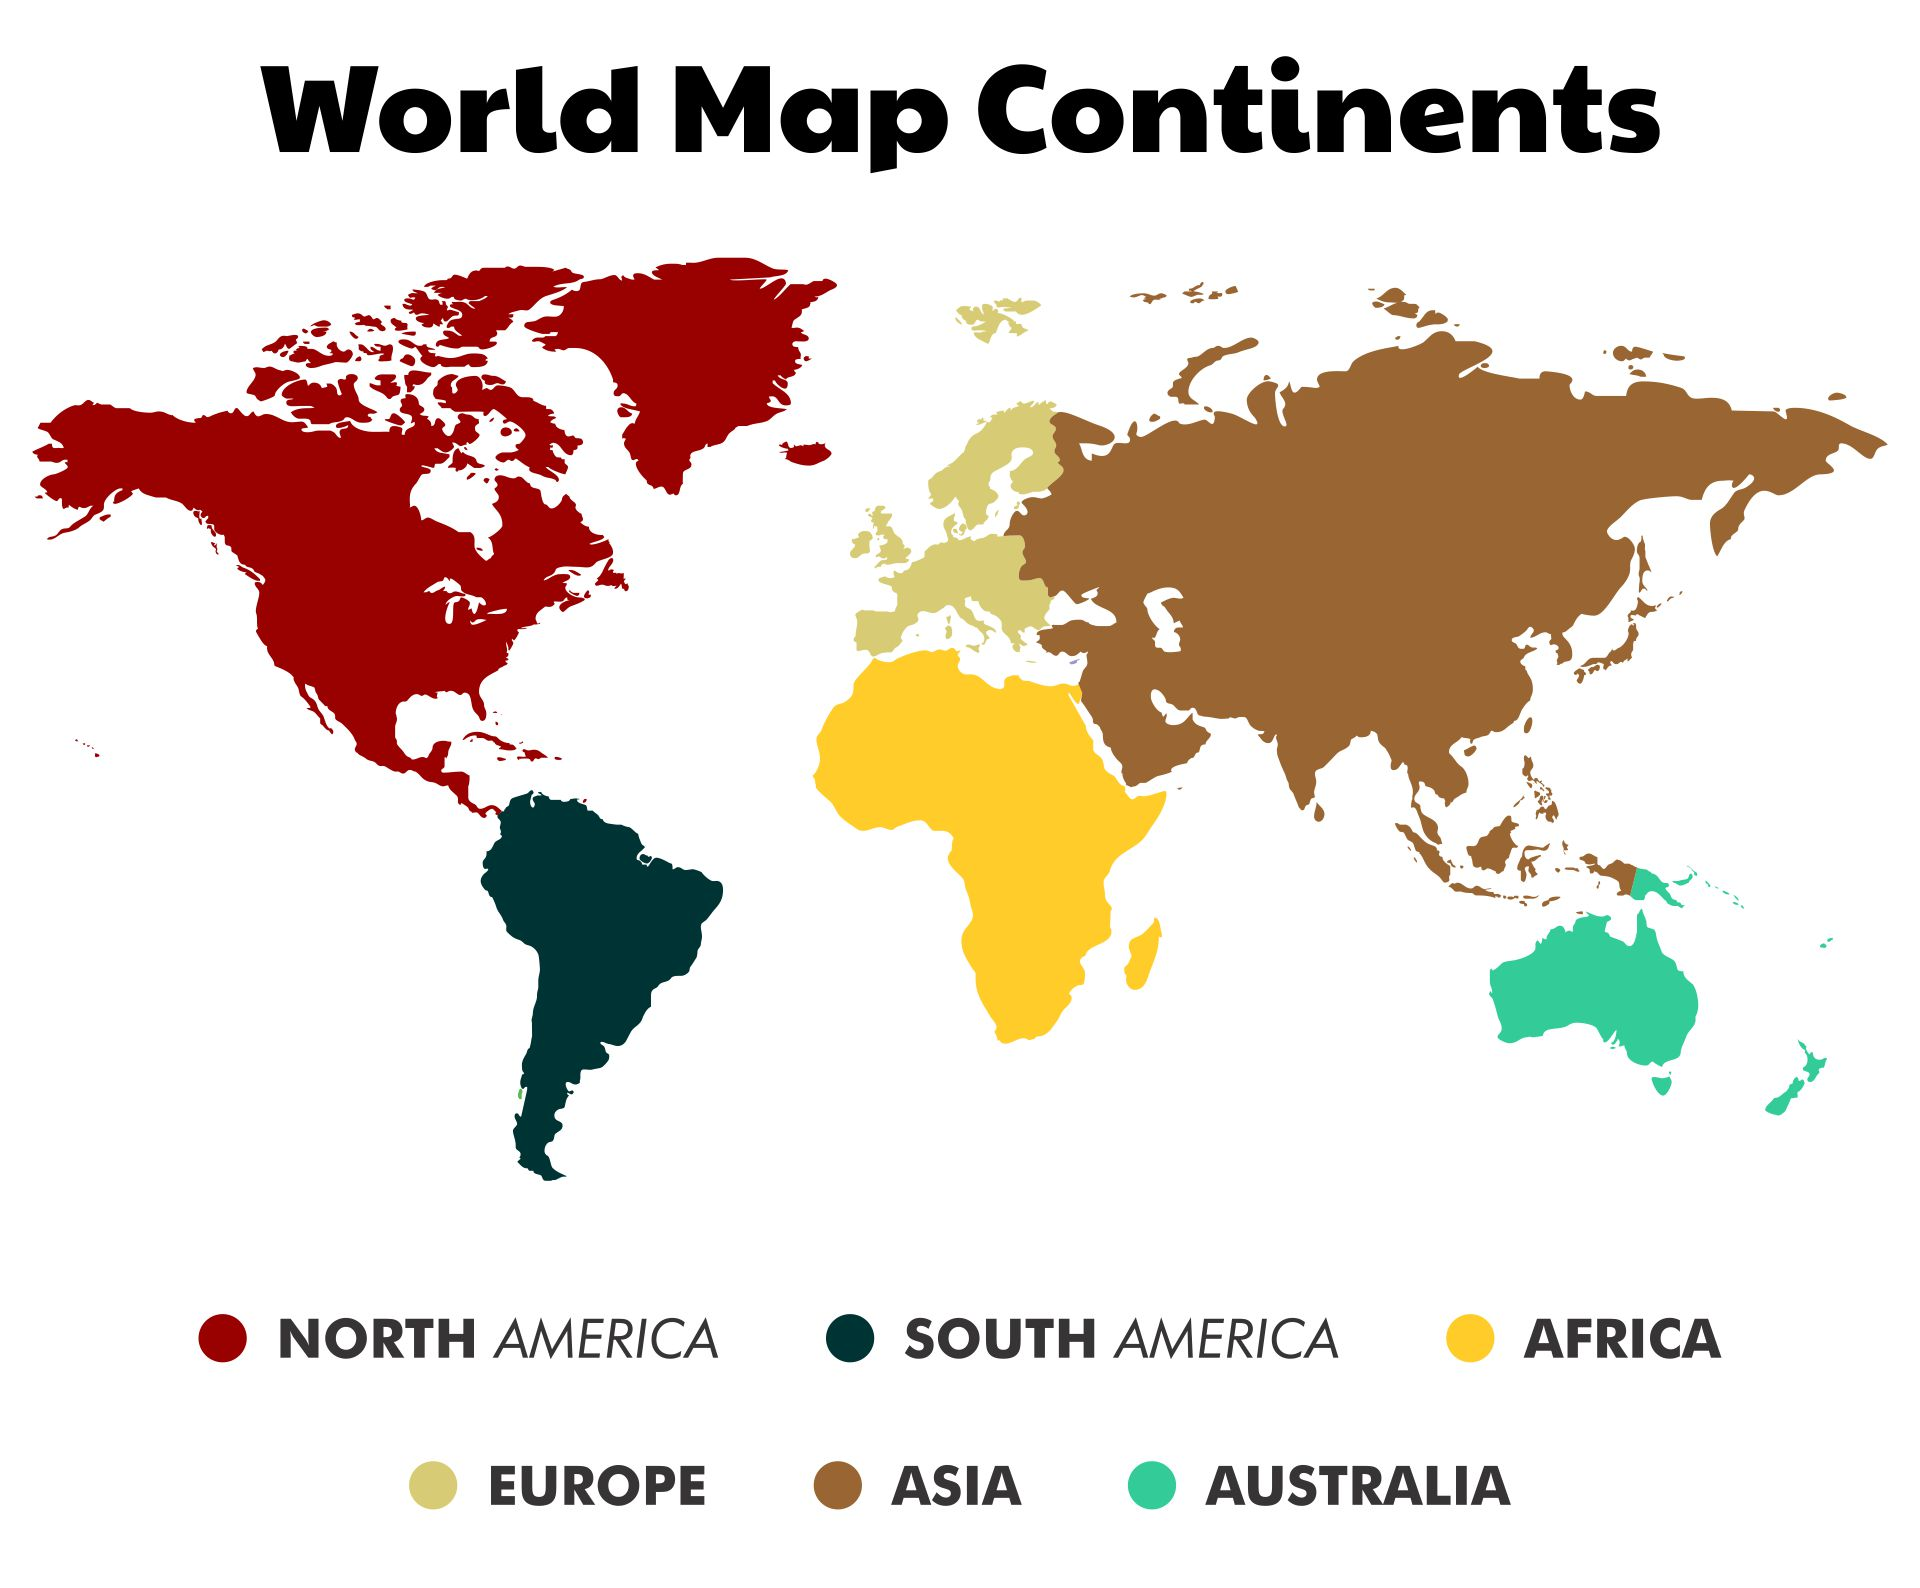 Simple World Map With Continents